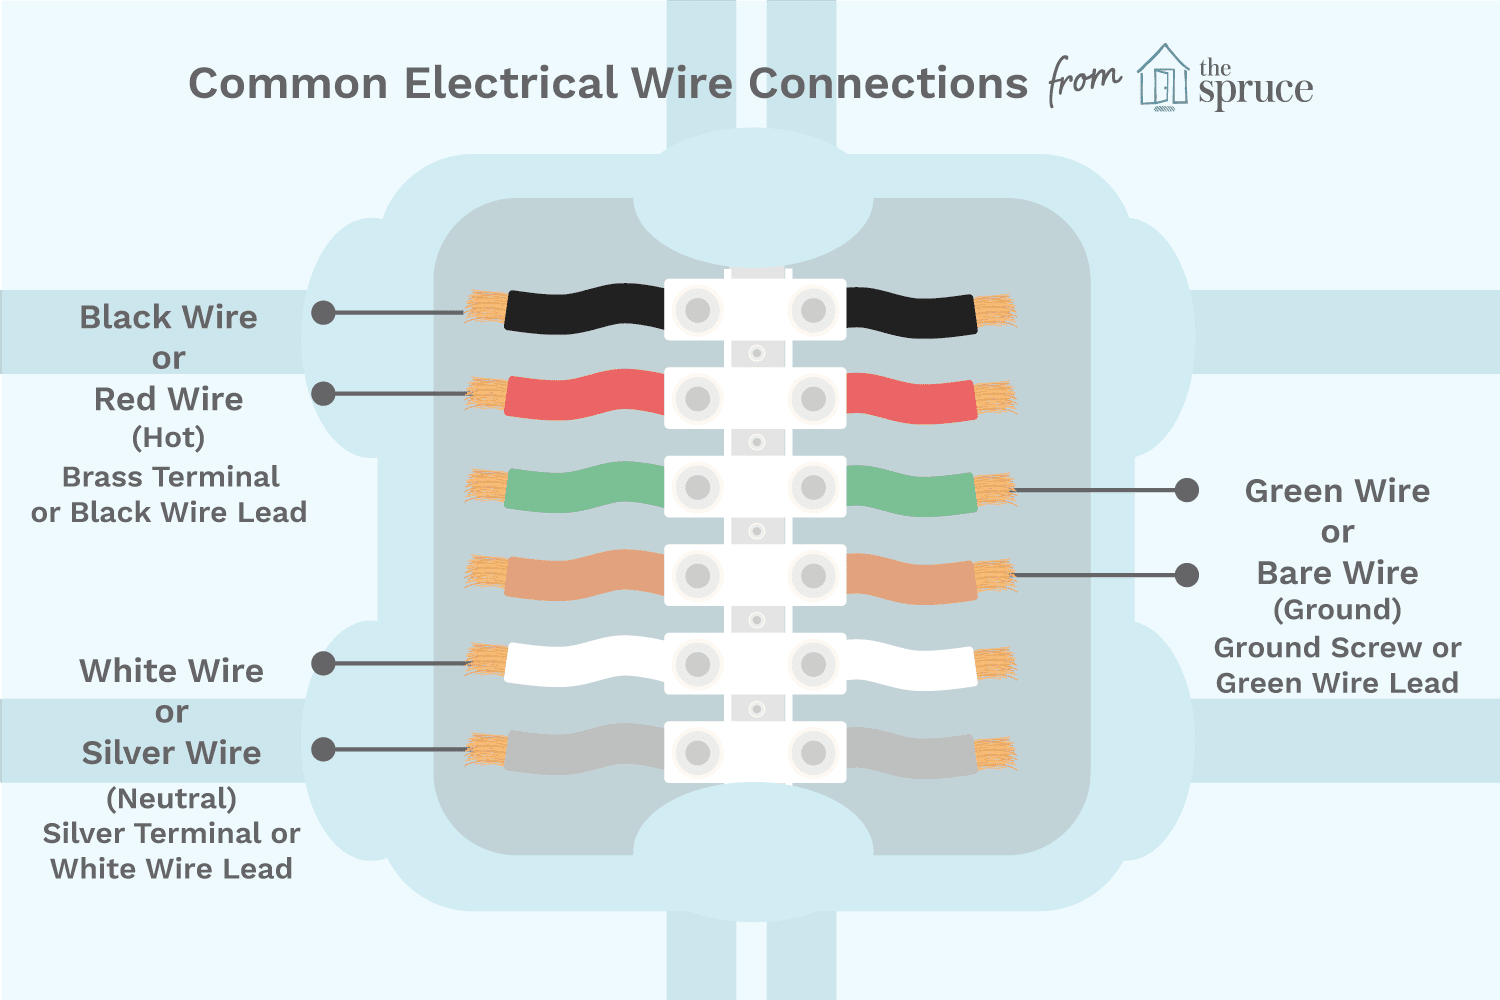 Color Coding Of Electrical Wires And Terminal Screws Wiring Up A Lamp Post Electric